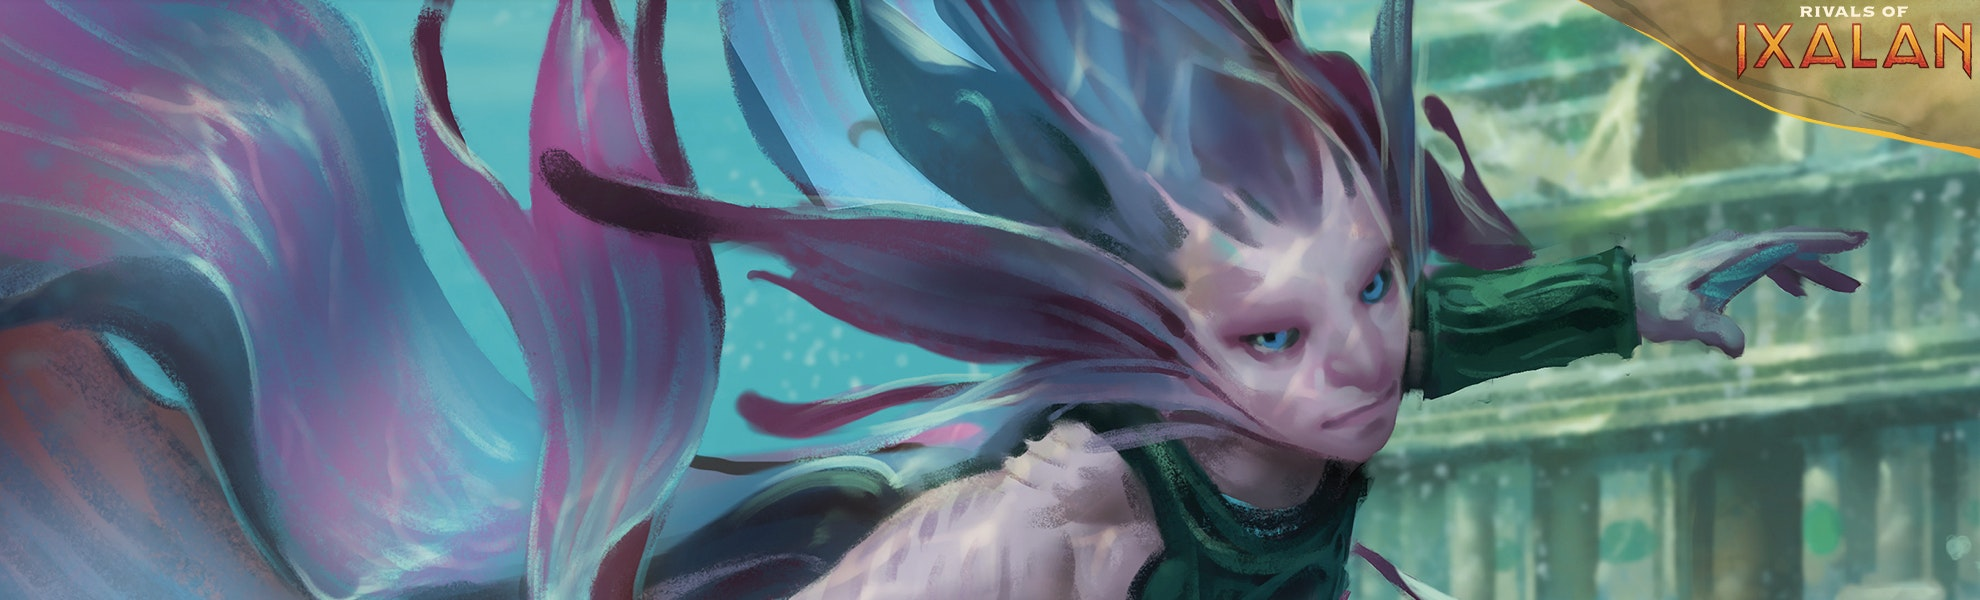 Rivals of Ixalan Pre-Release Kit